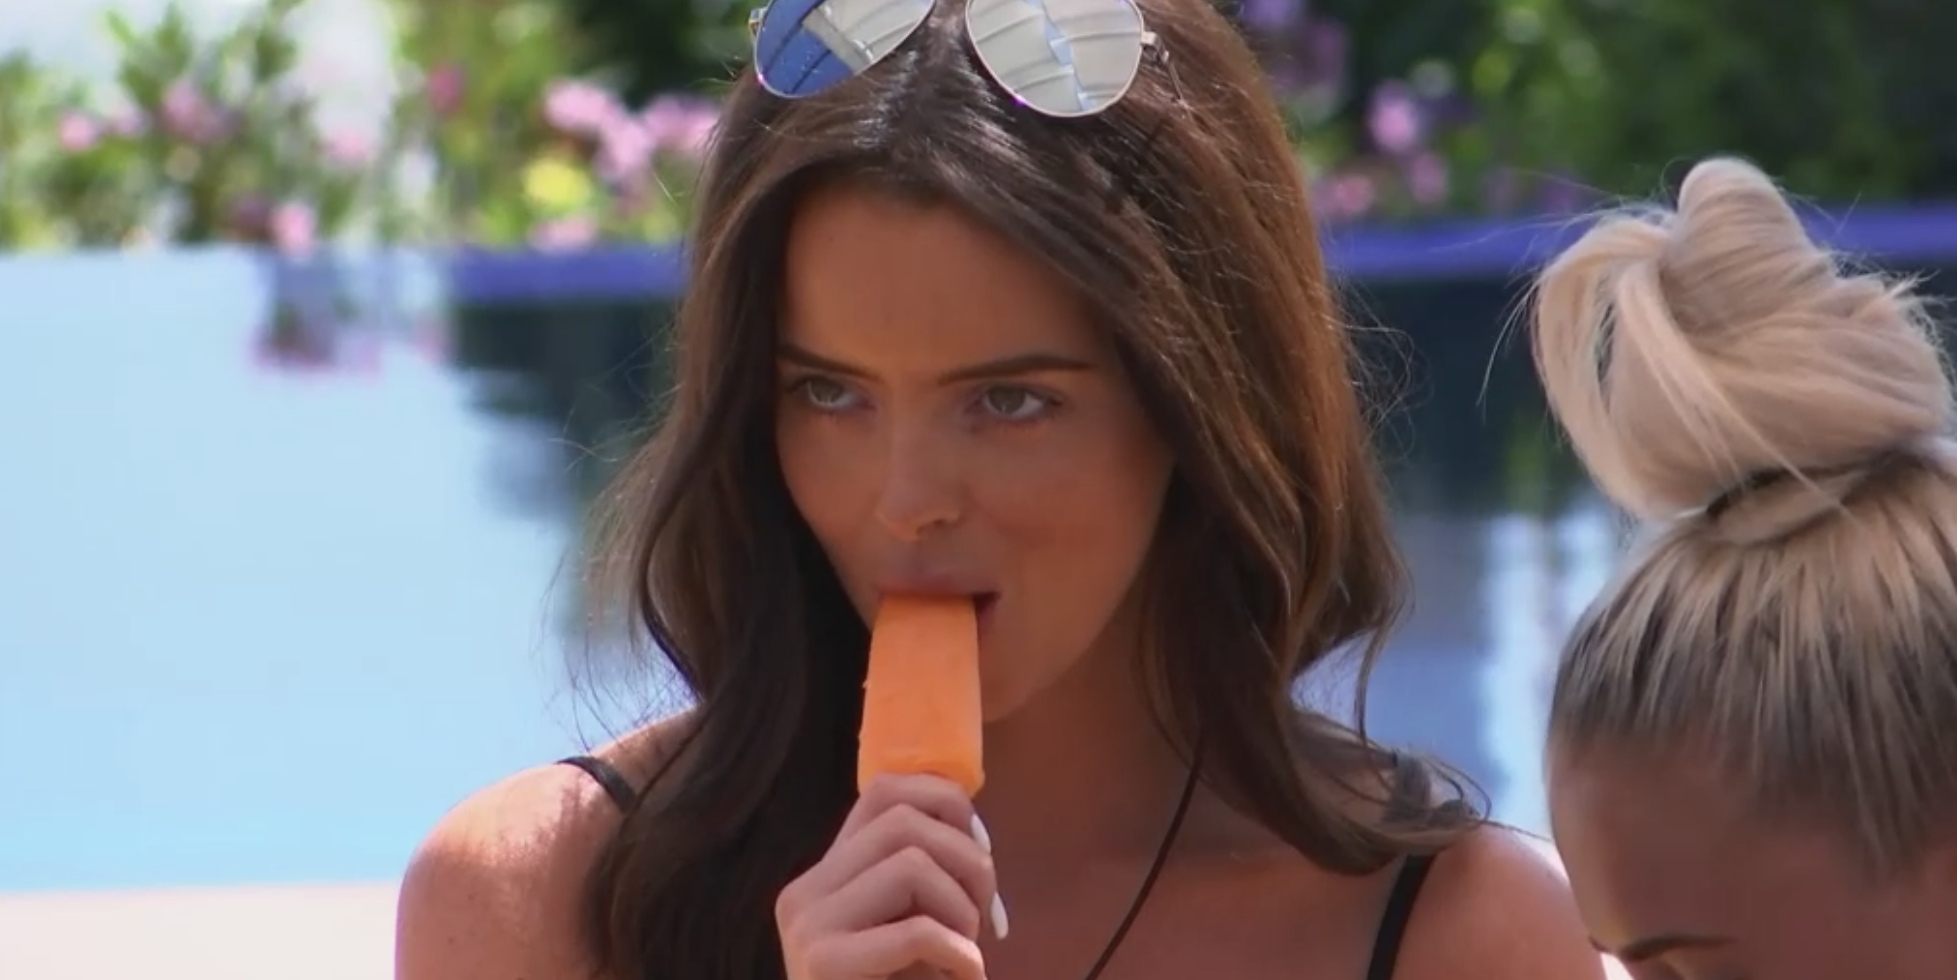 Compatability of Love Island couples put to the test